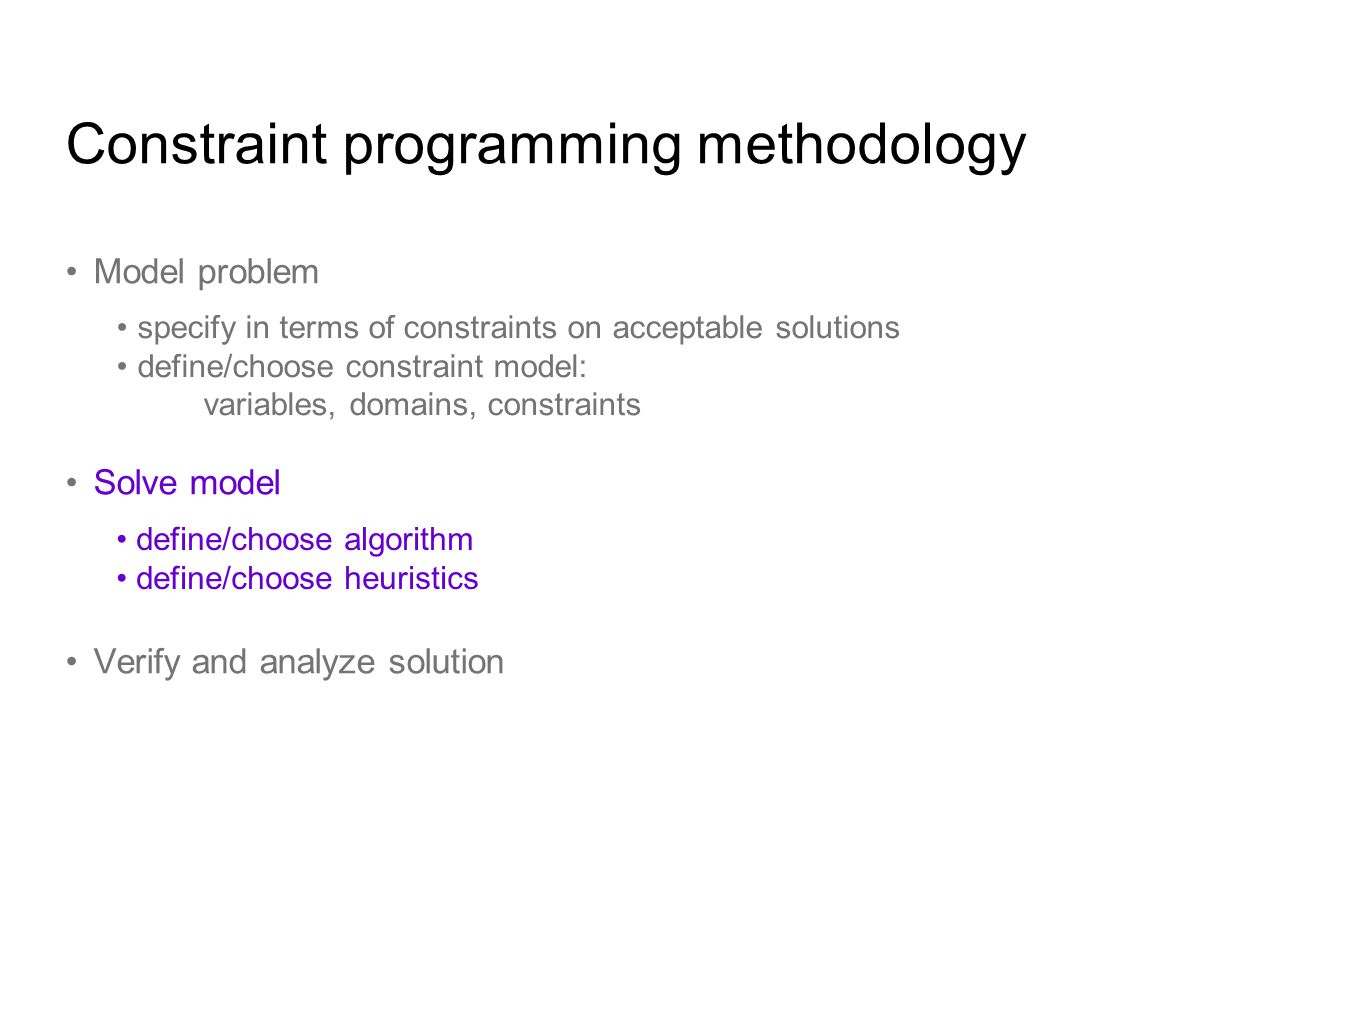 Constraint programming methodology Model problem Solve model Verify and analyze solution specify in terms of constraints on acceptable solutions define/choose constraint model: variables, domains, constraints define/choose algorithm define/choose heuristics